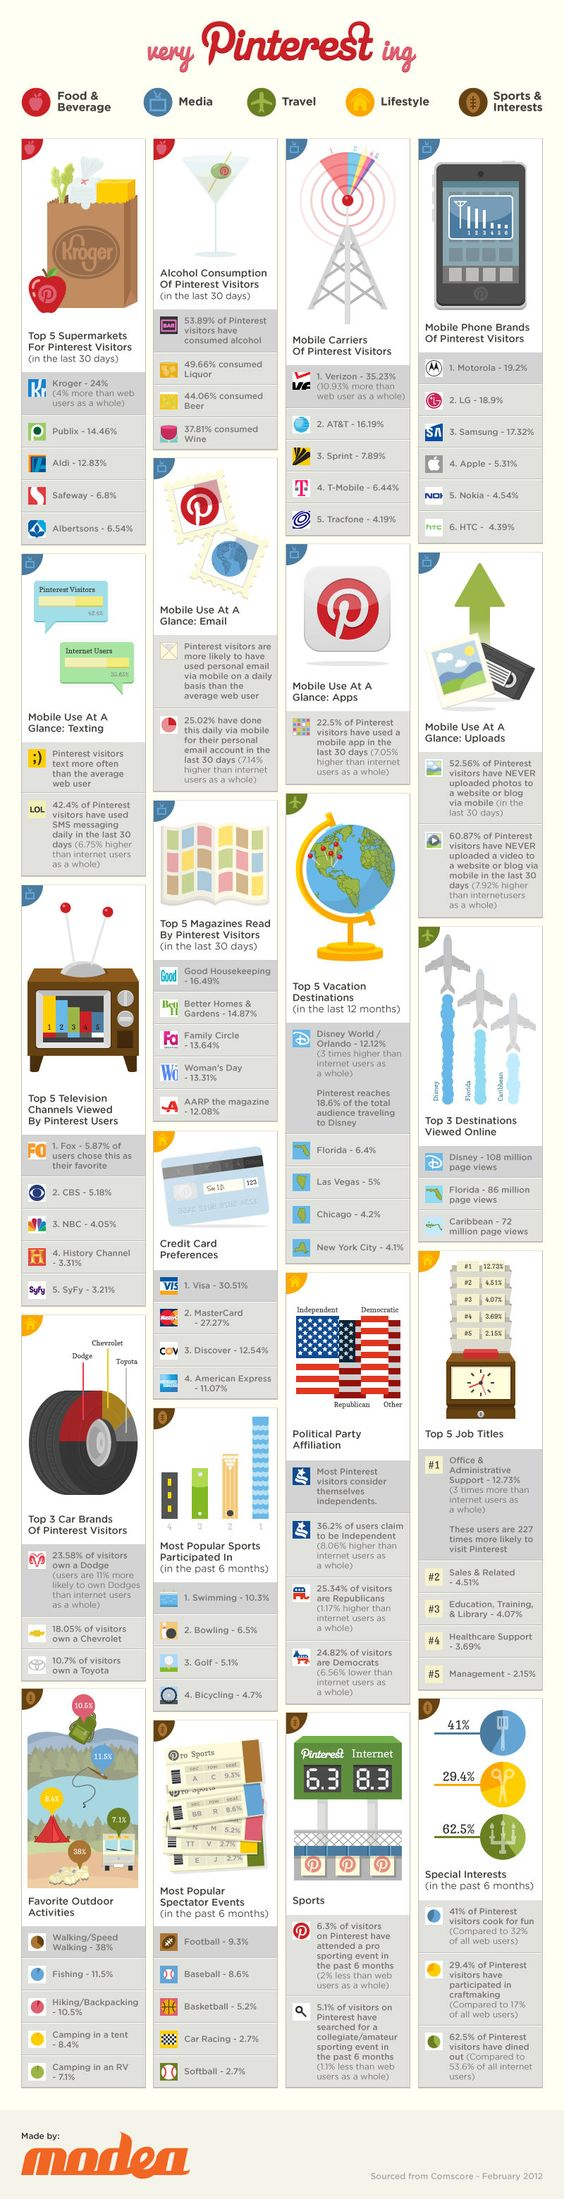 Pinterest users are three times more likely than average Internet users to have visited Disney World in the past year. Their favorite magazine is Good Housekeeping. More than half of them have drank alcohol in the past month.    They text and email from mobile phones and use mobile apps more often than average Internet users. They're 11% more likely to use Verizon than other web surfers and 19% have Motorola phones.